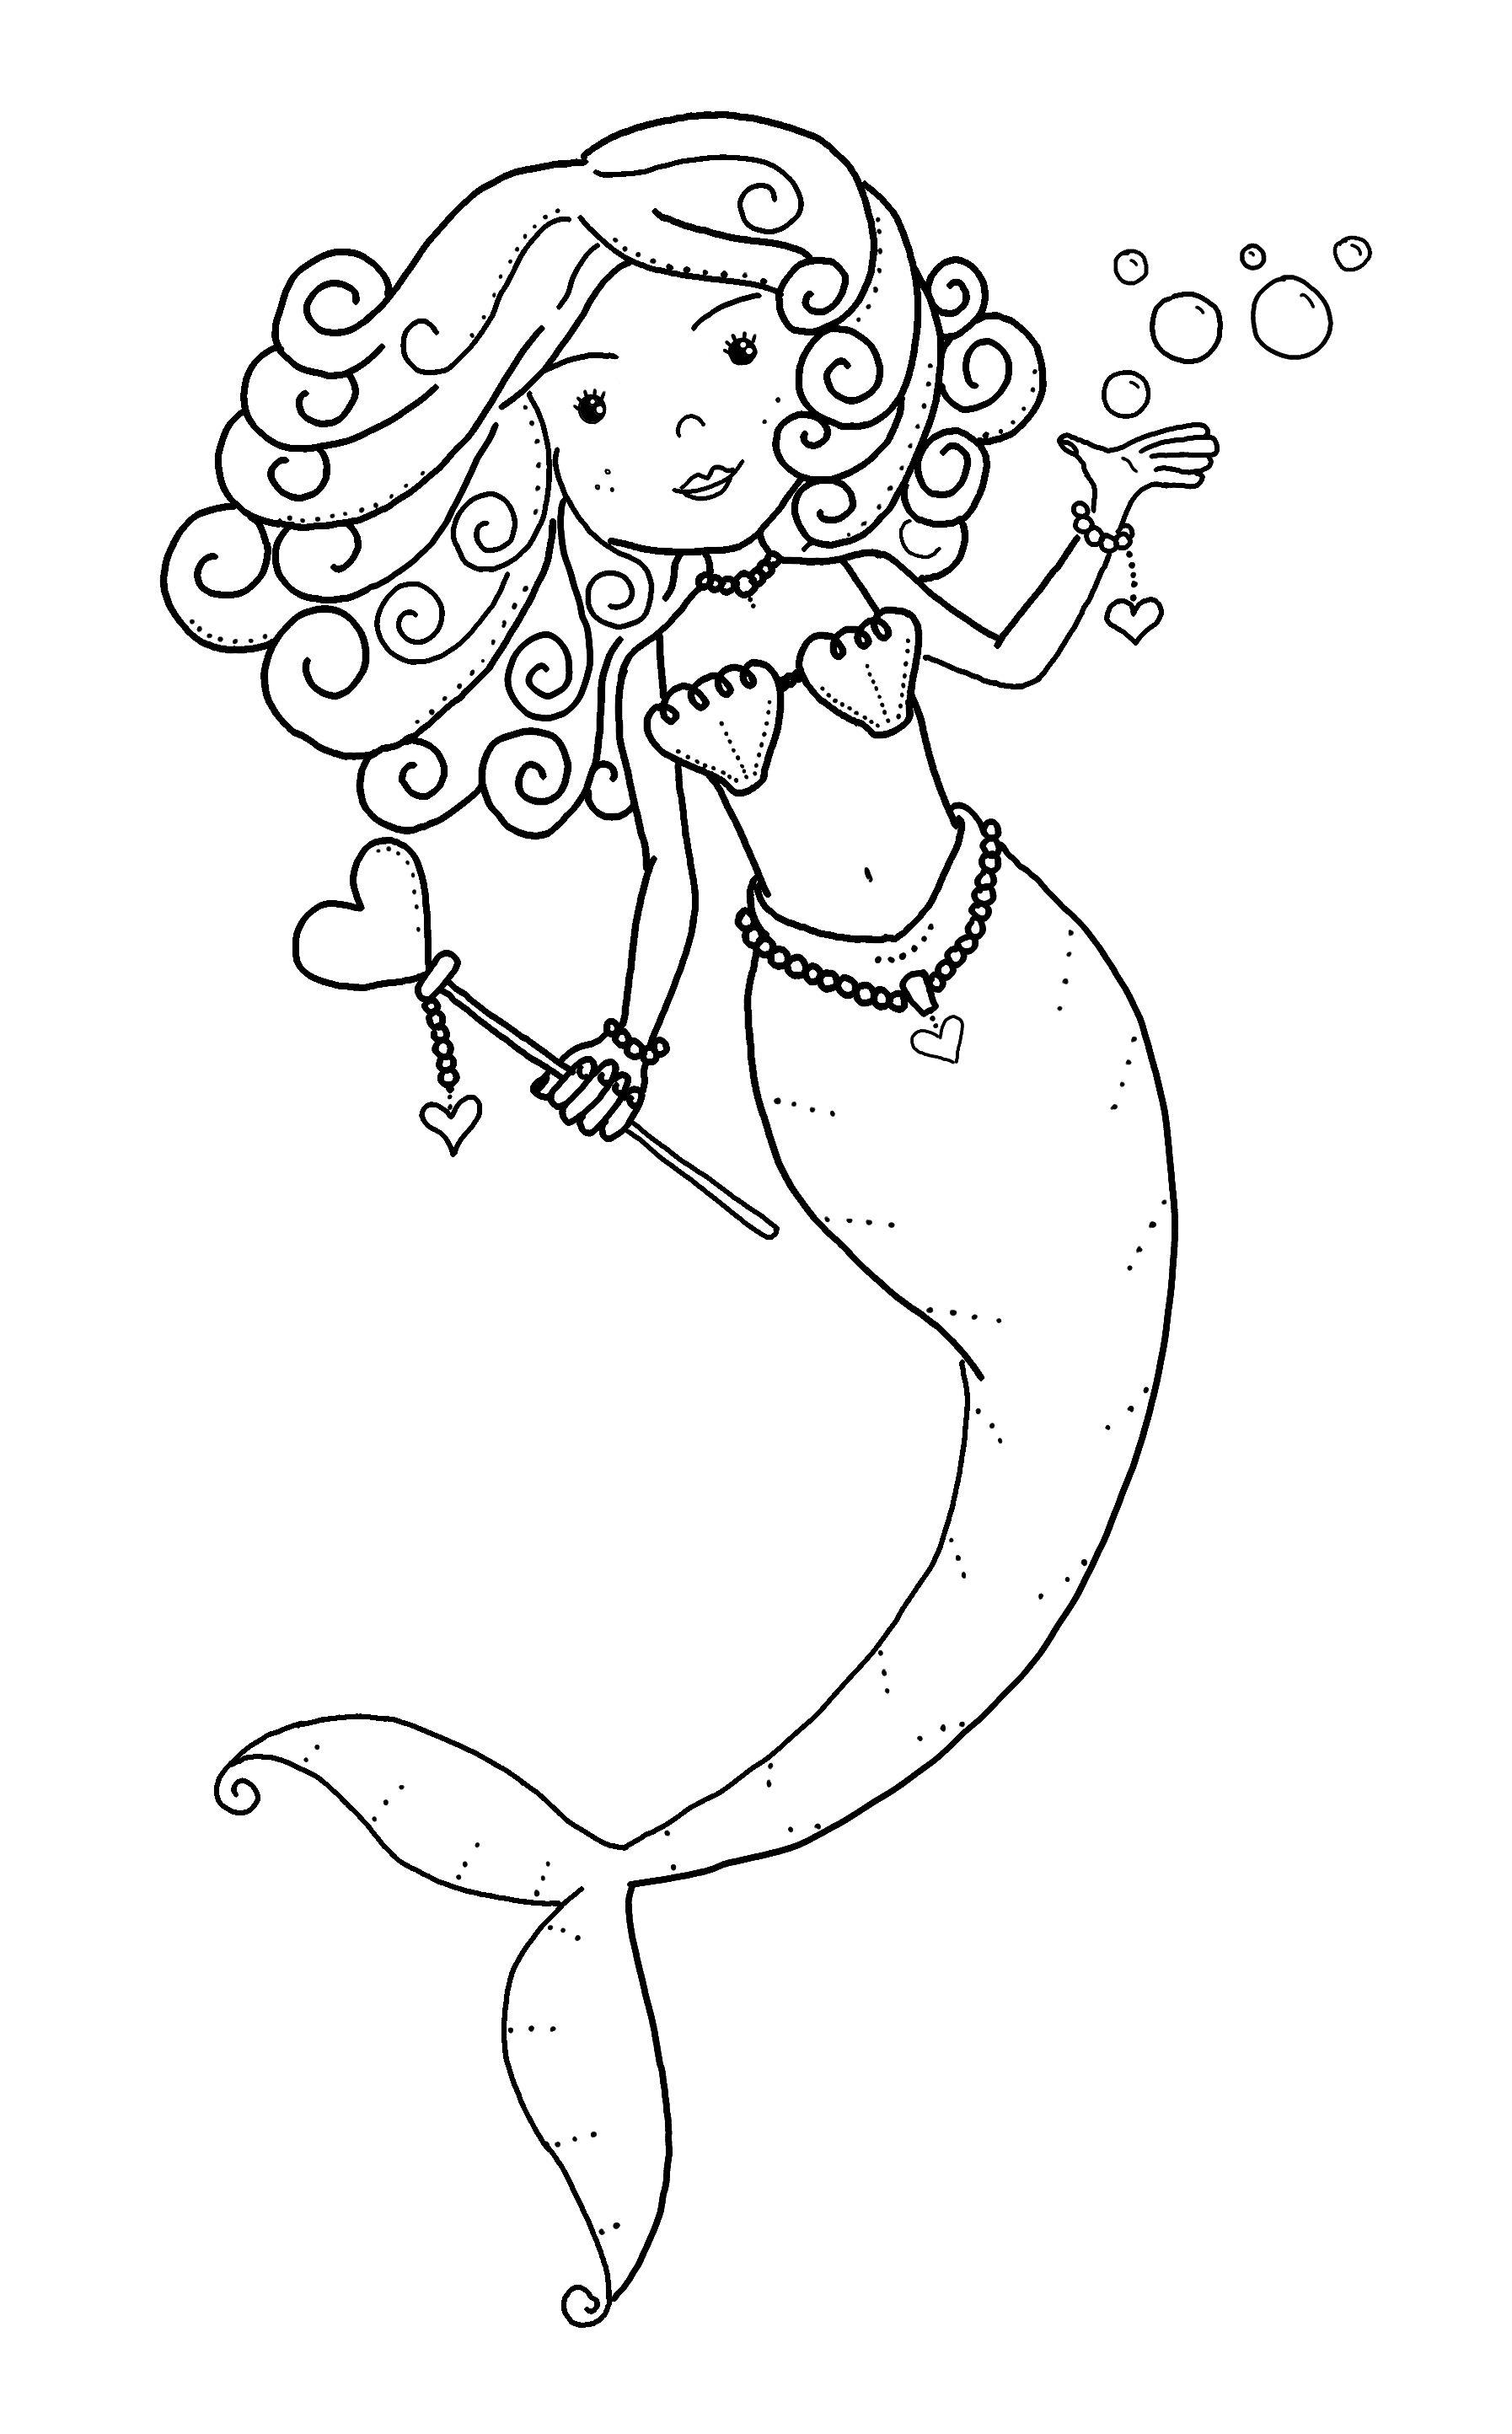 Pin By Heather Gaston On Digital Stamps Mermaid Coloring Pages Mermaid Coloring Heart Coloring Pages